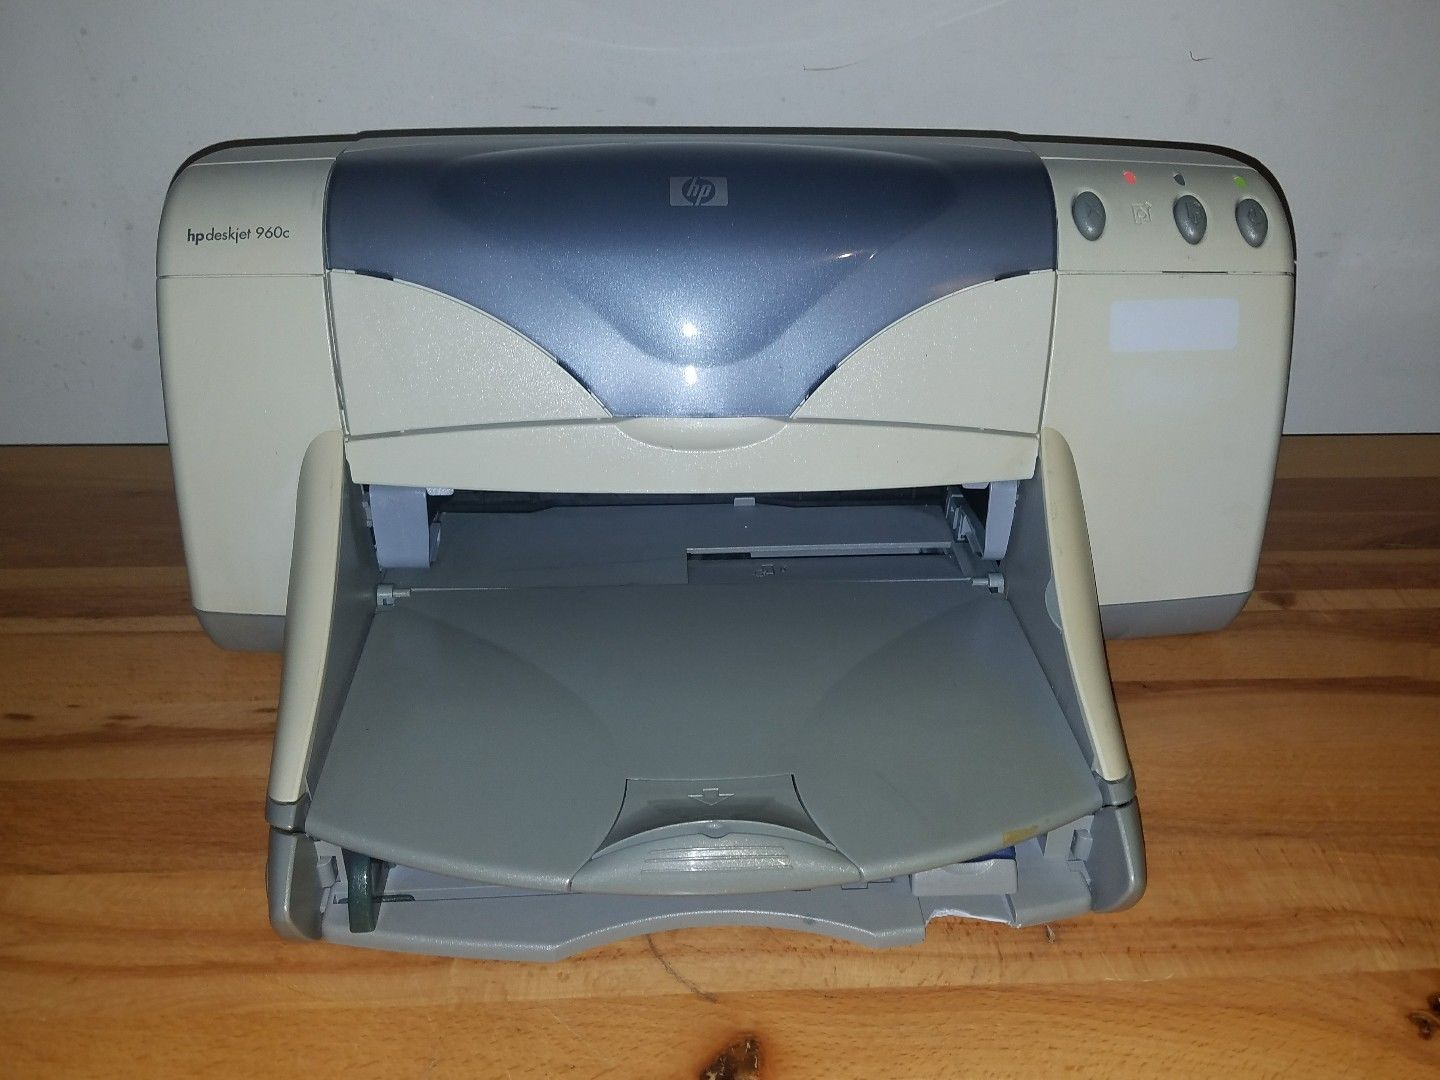 HP DESKJET 960C PRINT DRIVER DOWNLOAD